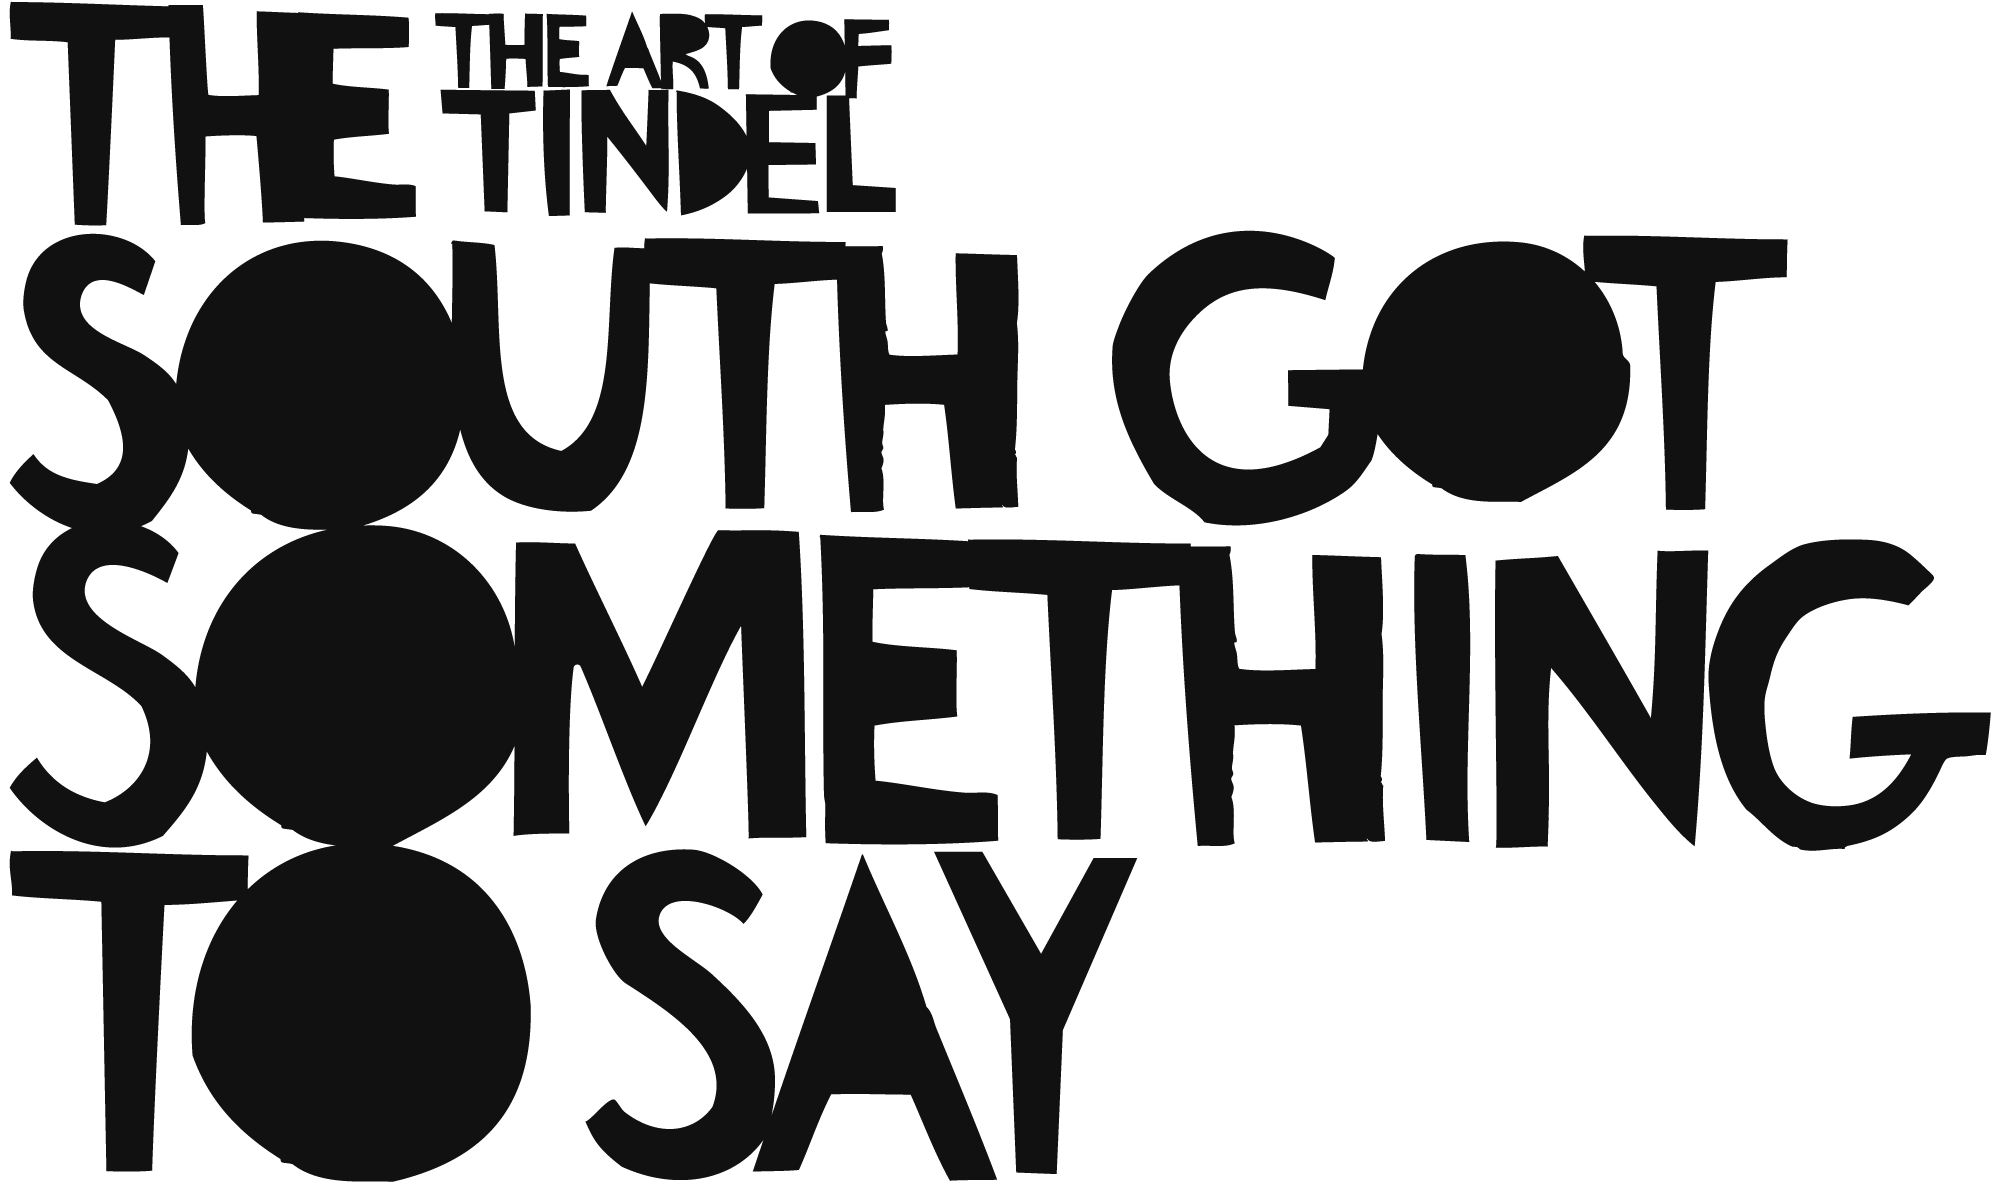 south-title-1.png